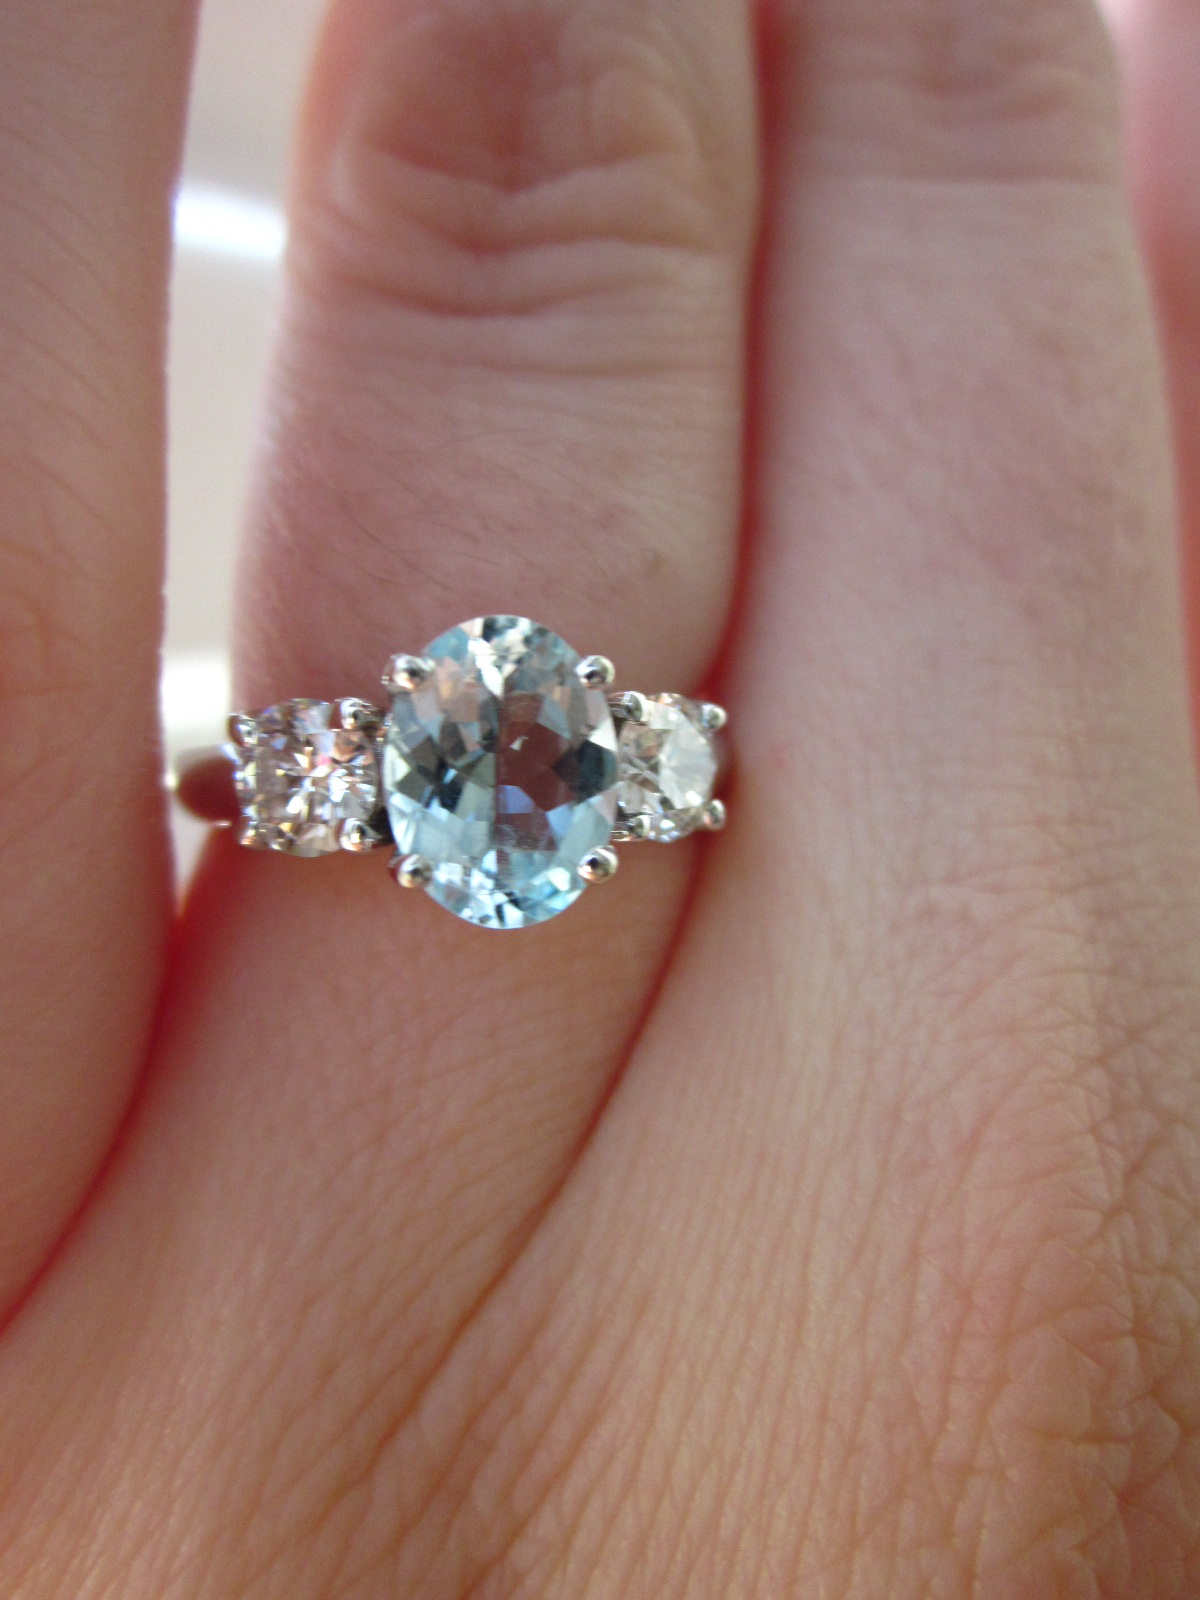 While In Boston Opting For An Aquamarine Engagement Ring